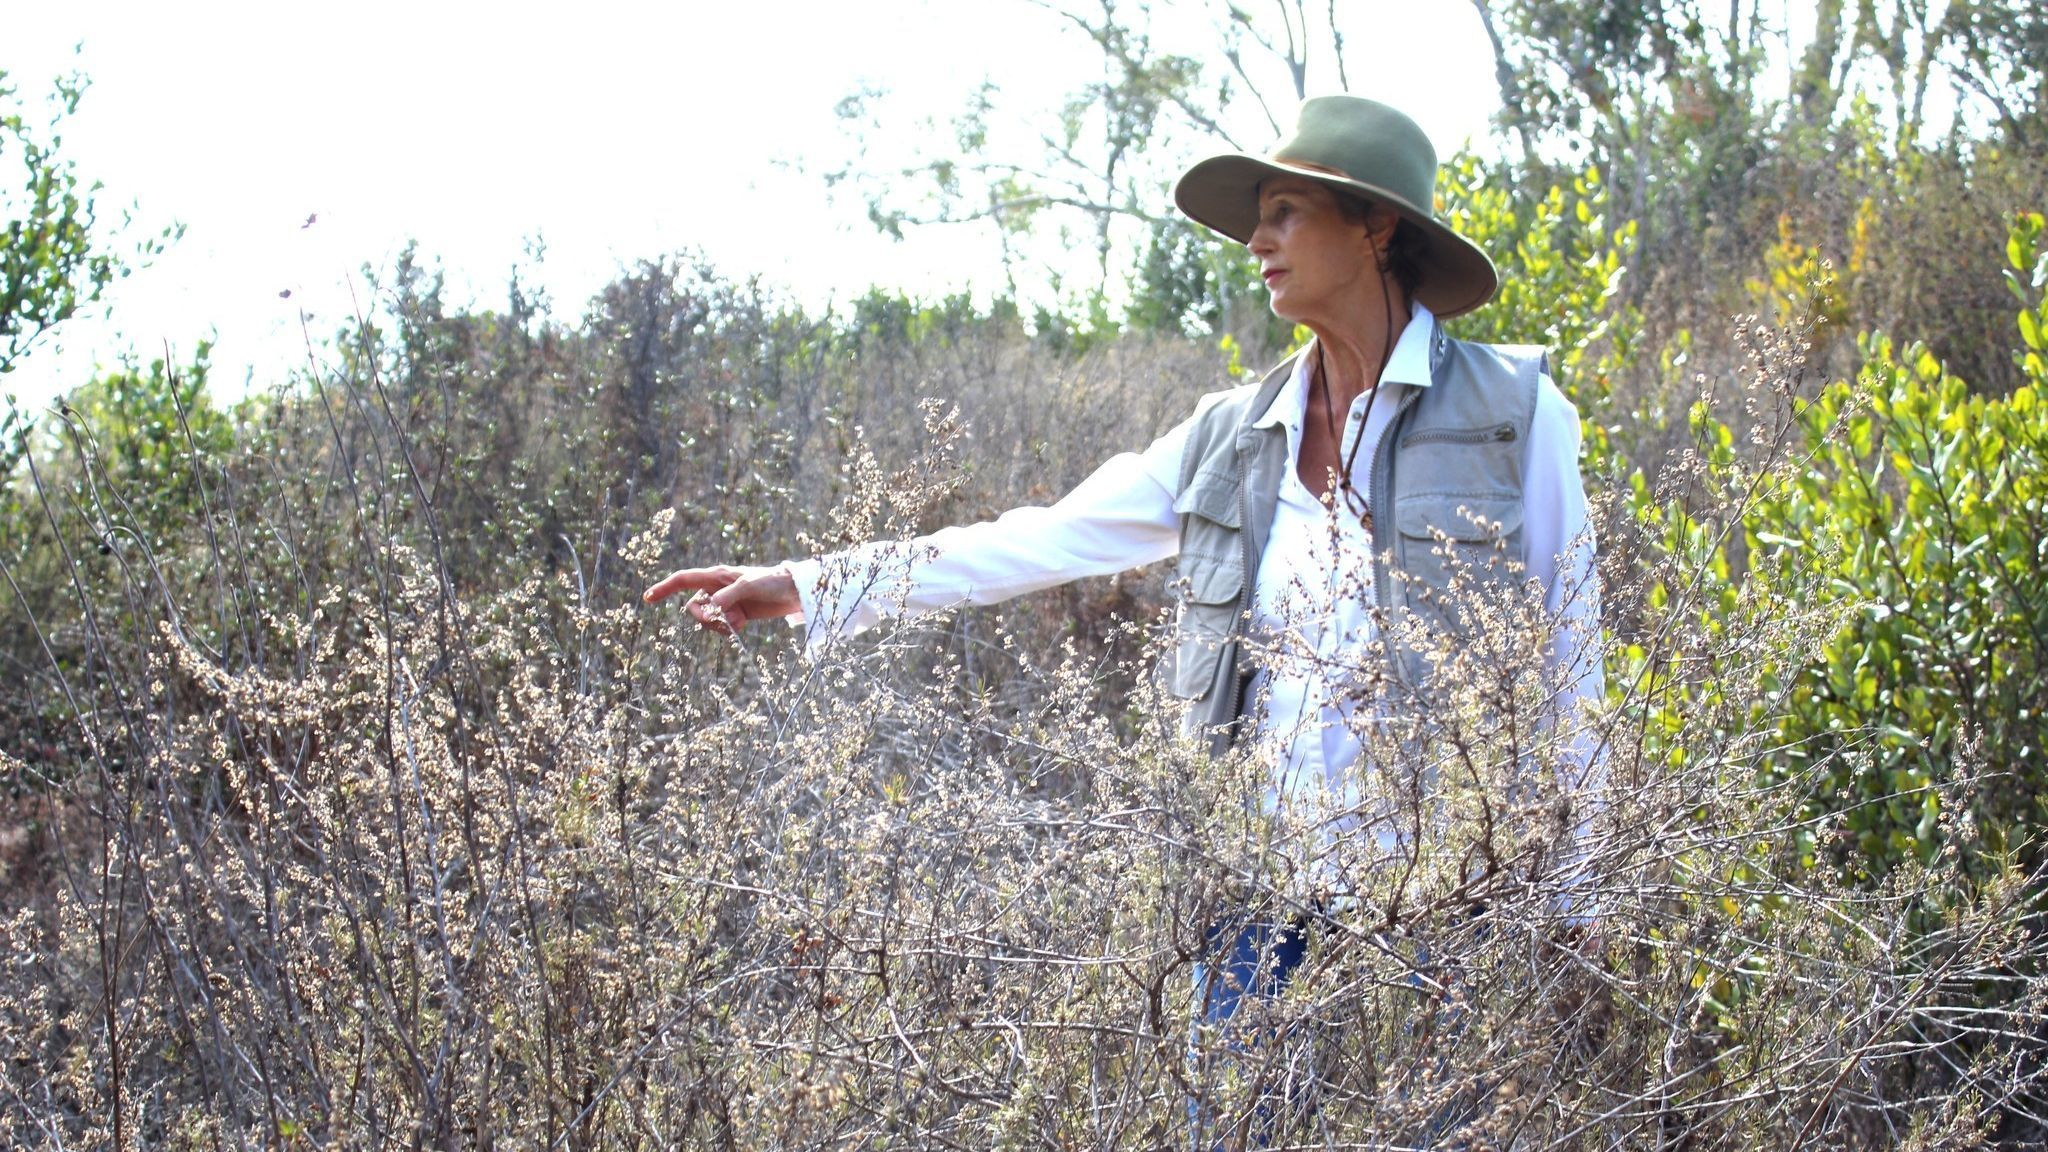 Edie Littlefield walked the entire 1,600 miles of El Camino Real from Loreto, Mexico to Sonoma, California.